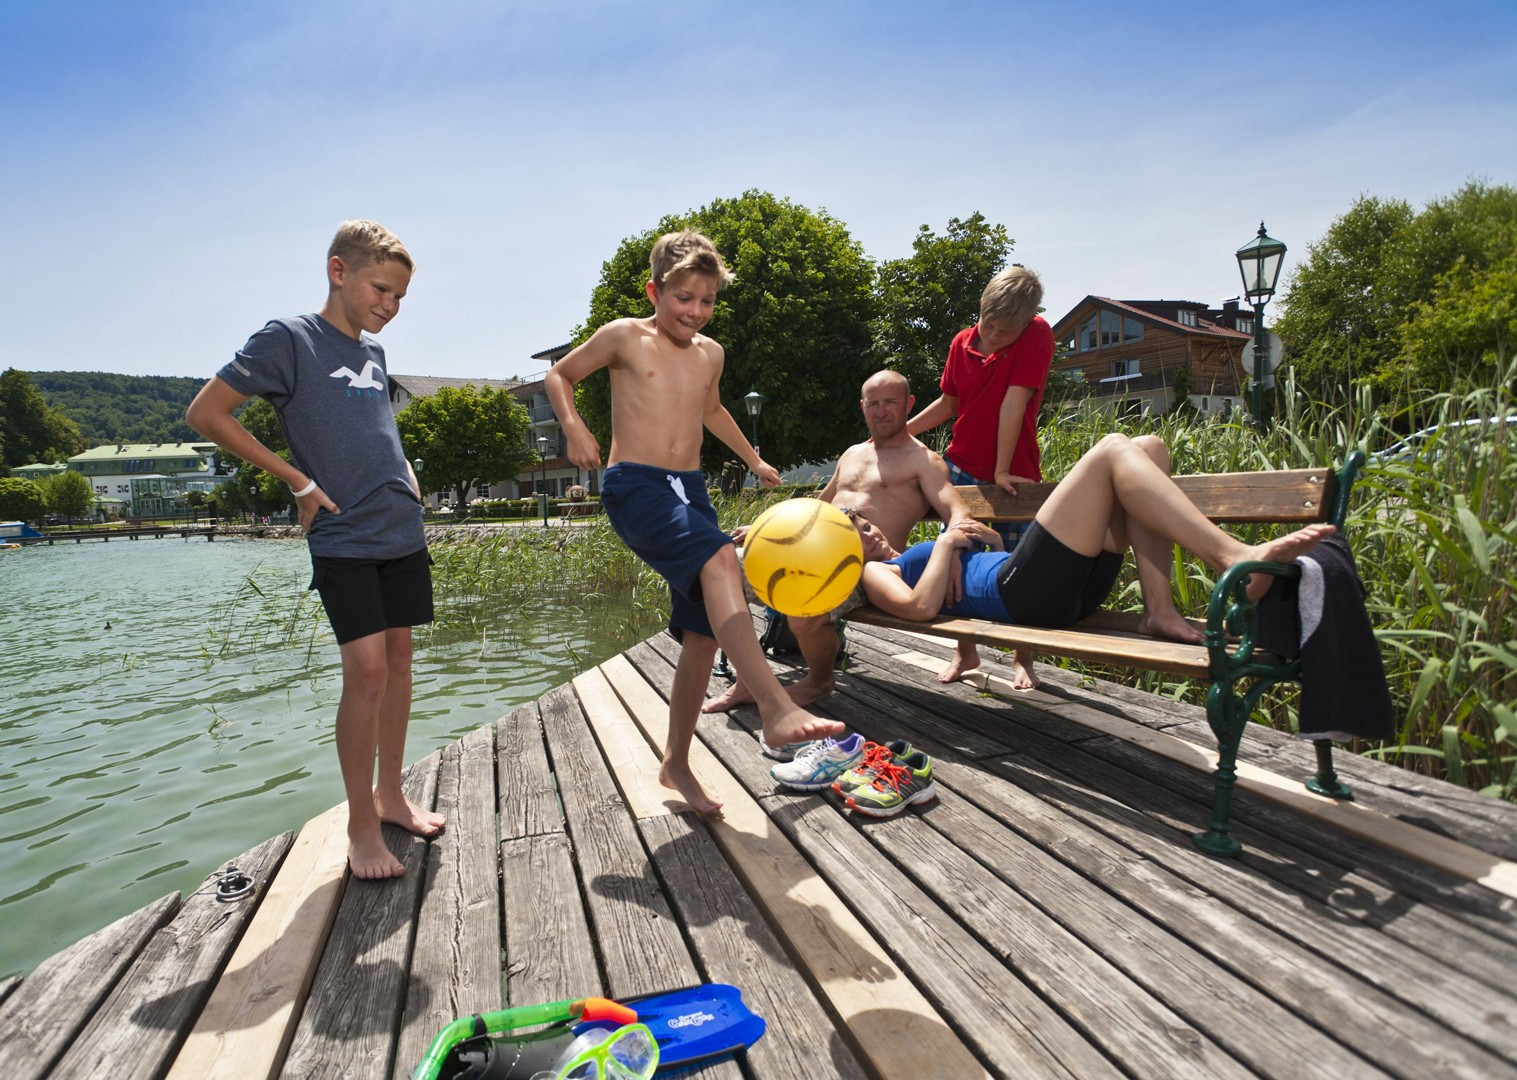 mattsee-austria-ten-lakes-tour-family-cycling-holiday.jpg - Austria - Ten Lakes Tour - Self-Guided Family Cycling Holiday - Family Cycling